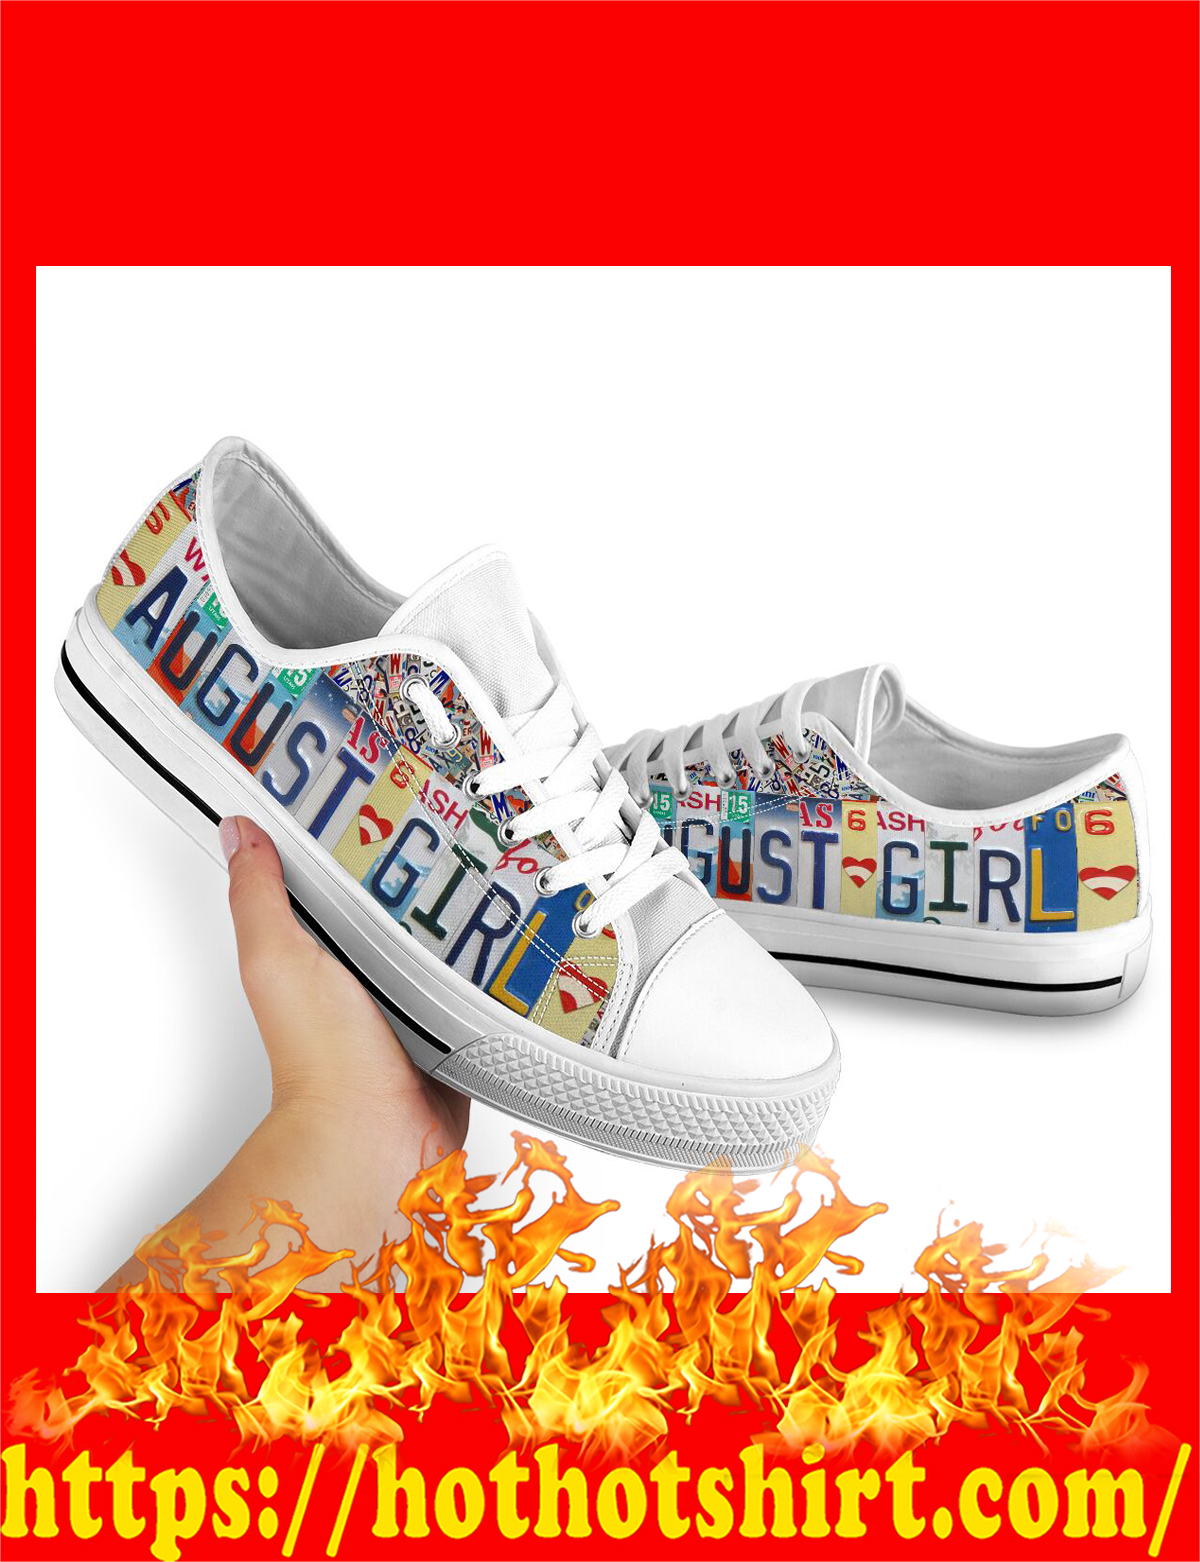 August girl low top shoes - pic 1